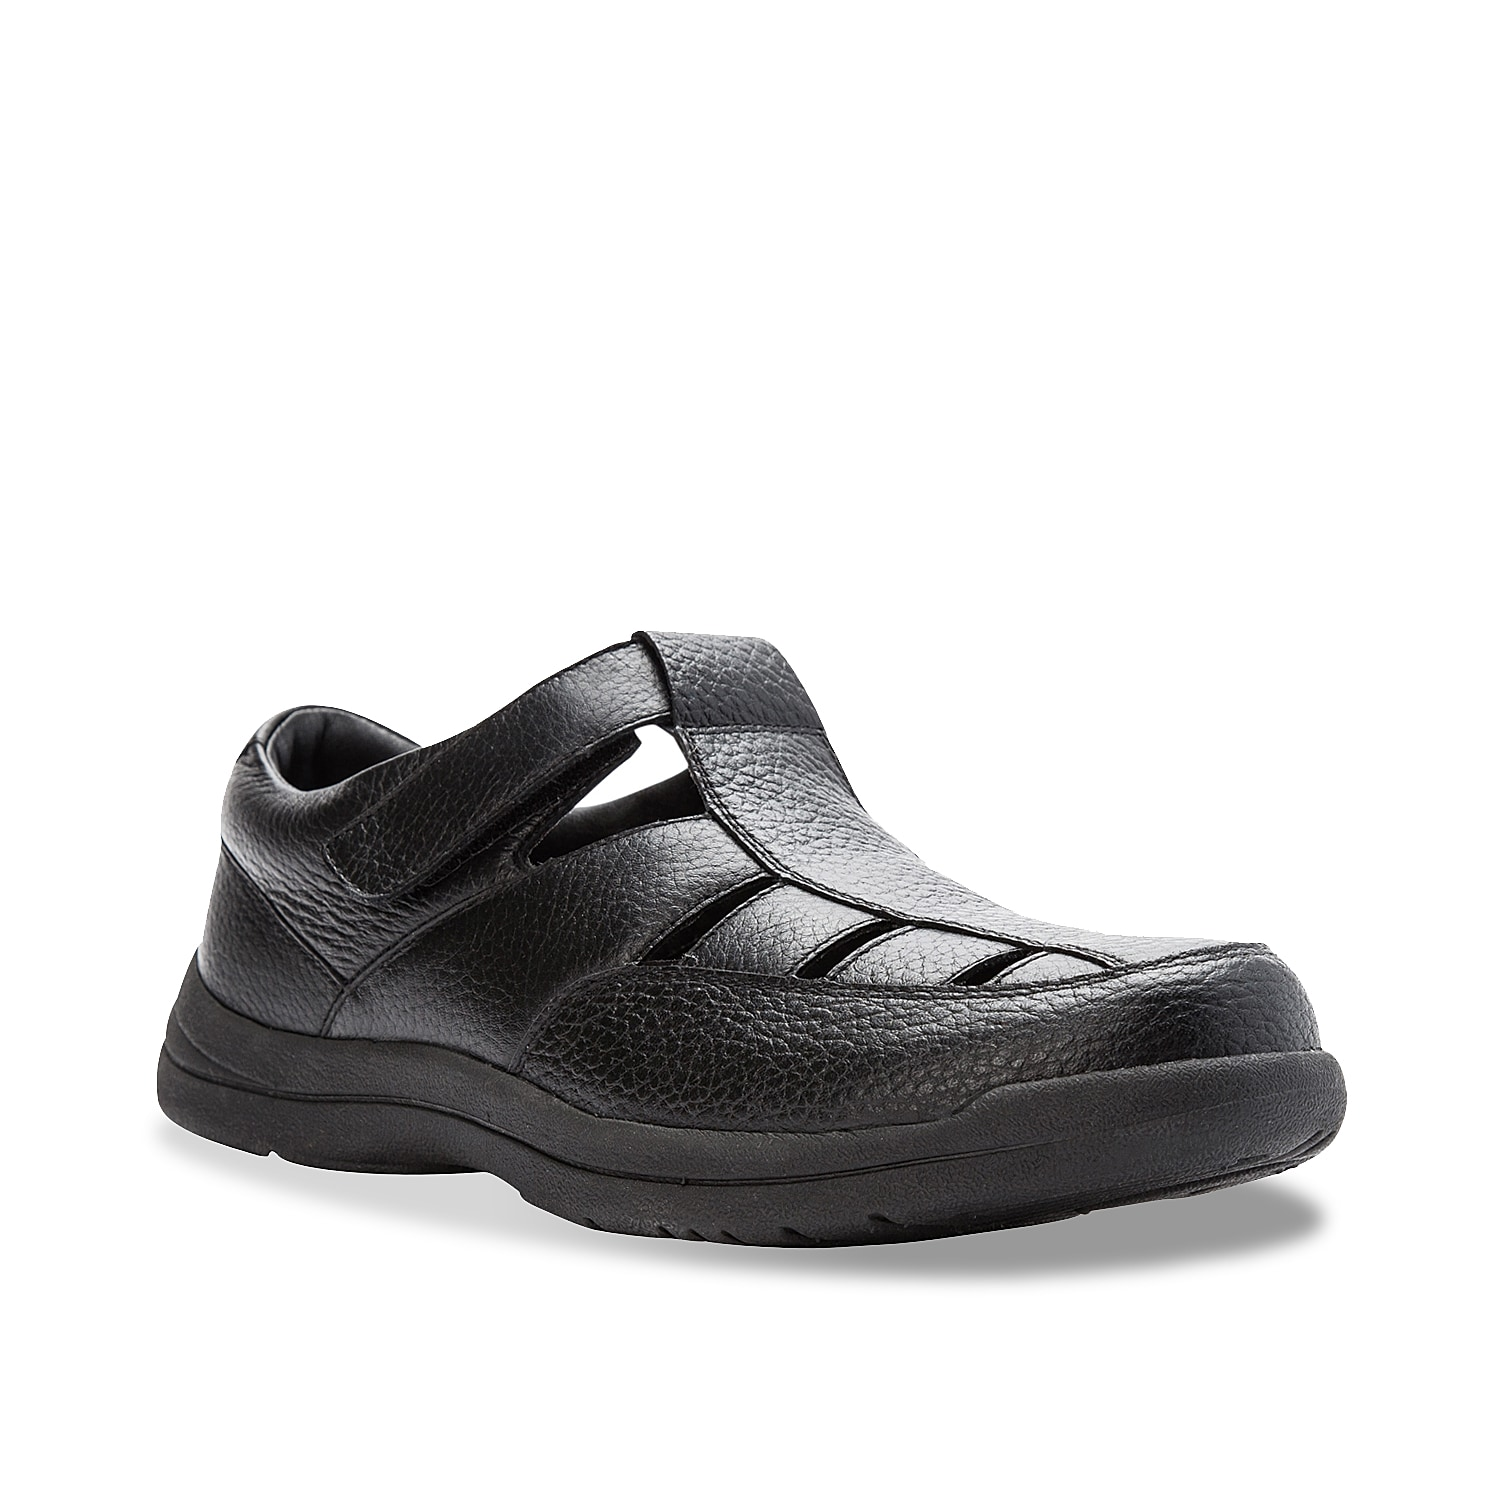 Add a sophisticated accent to your warm-weather look in the Bayport from Propet. These fisherman sandals feature a supple leather design and durable sole for lasting wear.